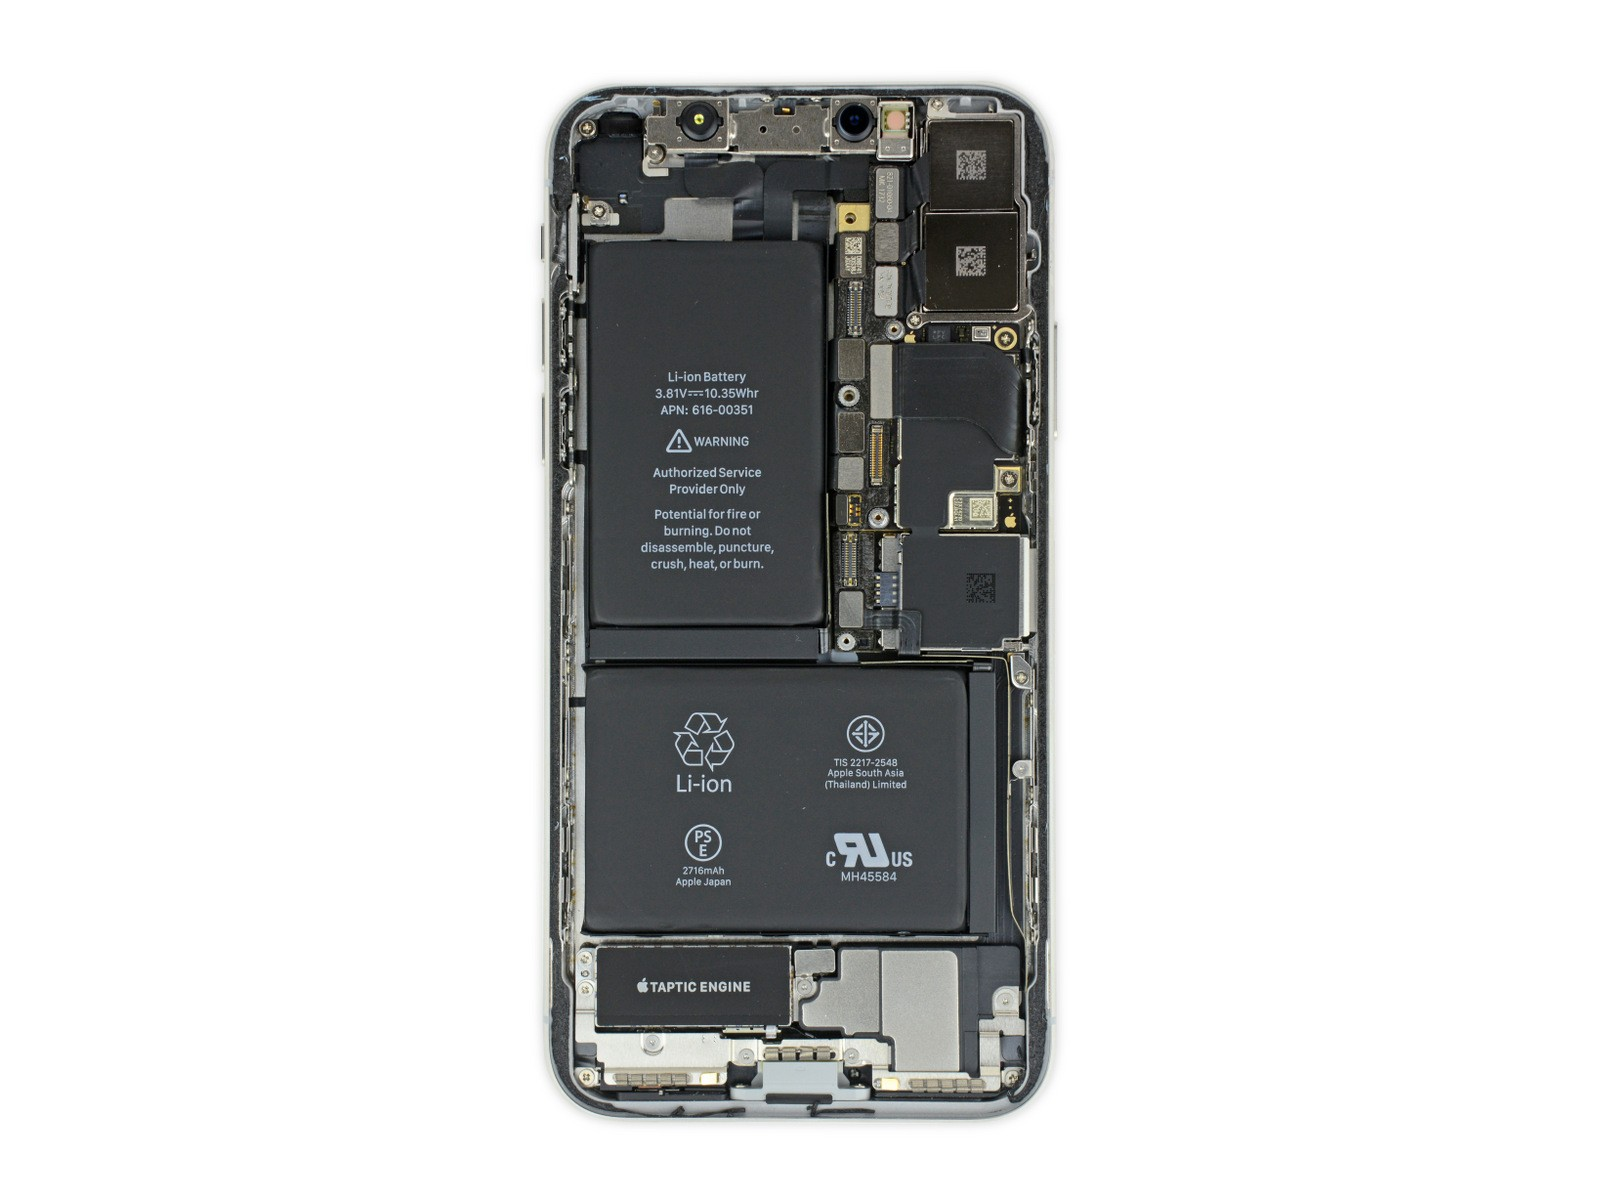 iFixit Teardown Reveals What's Inside the iPhone X